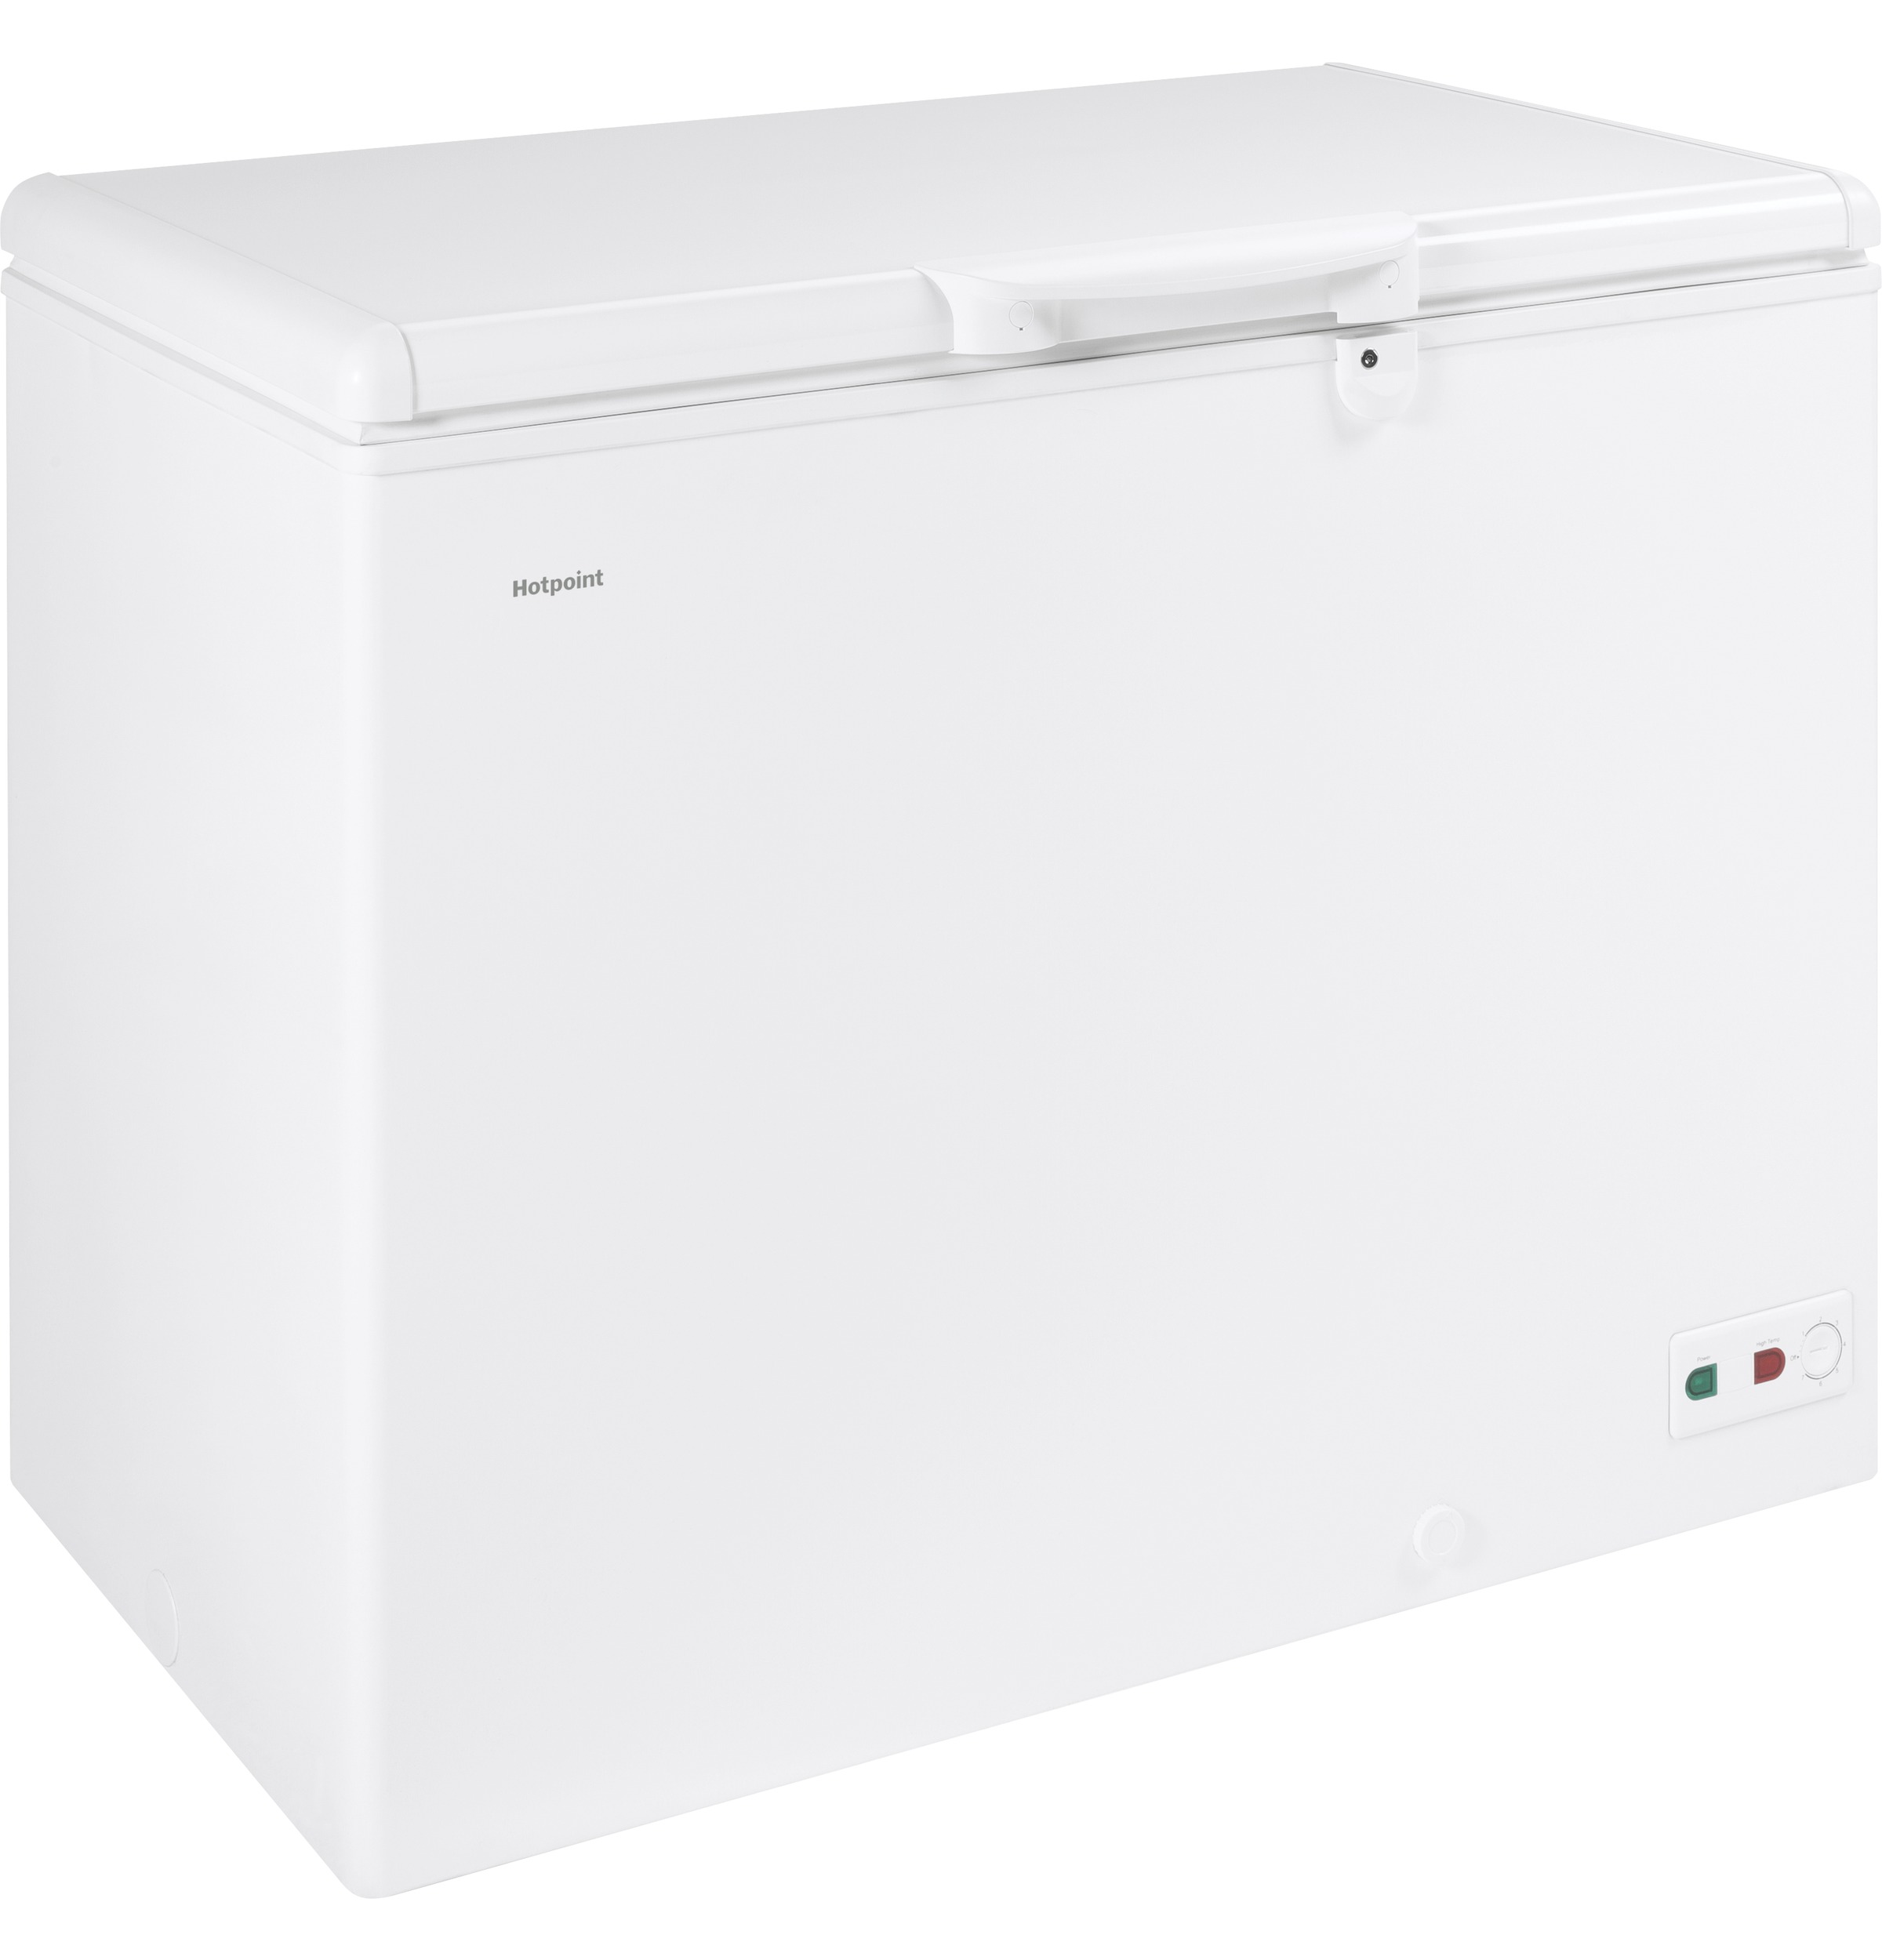 Model: HCM9DMWW | Hotpoint 9.4 Cu. Ft. Manual Defrost Chest Freezer